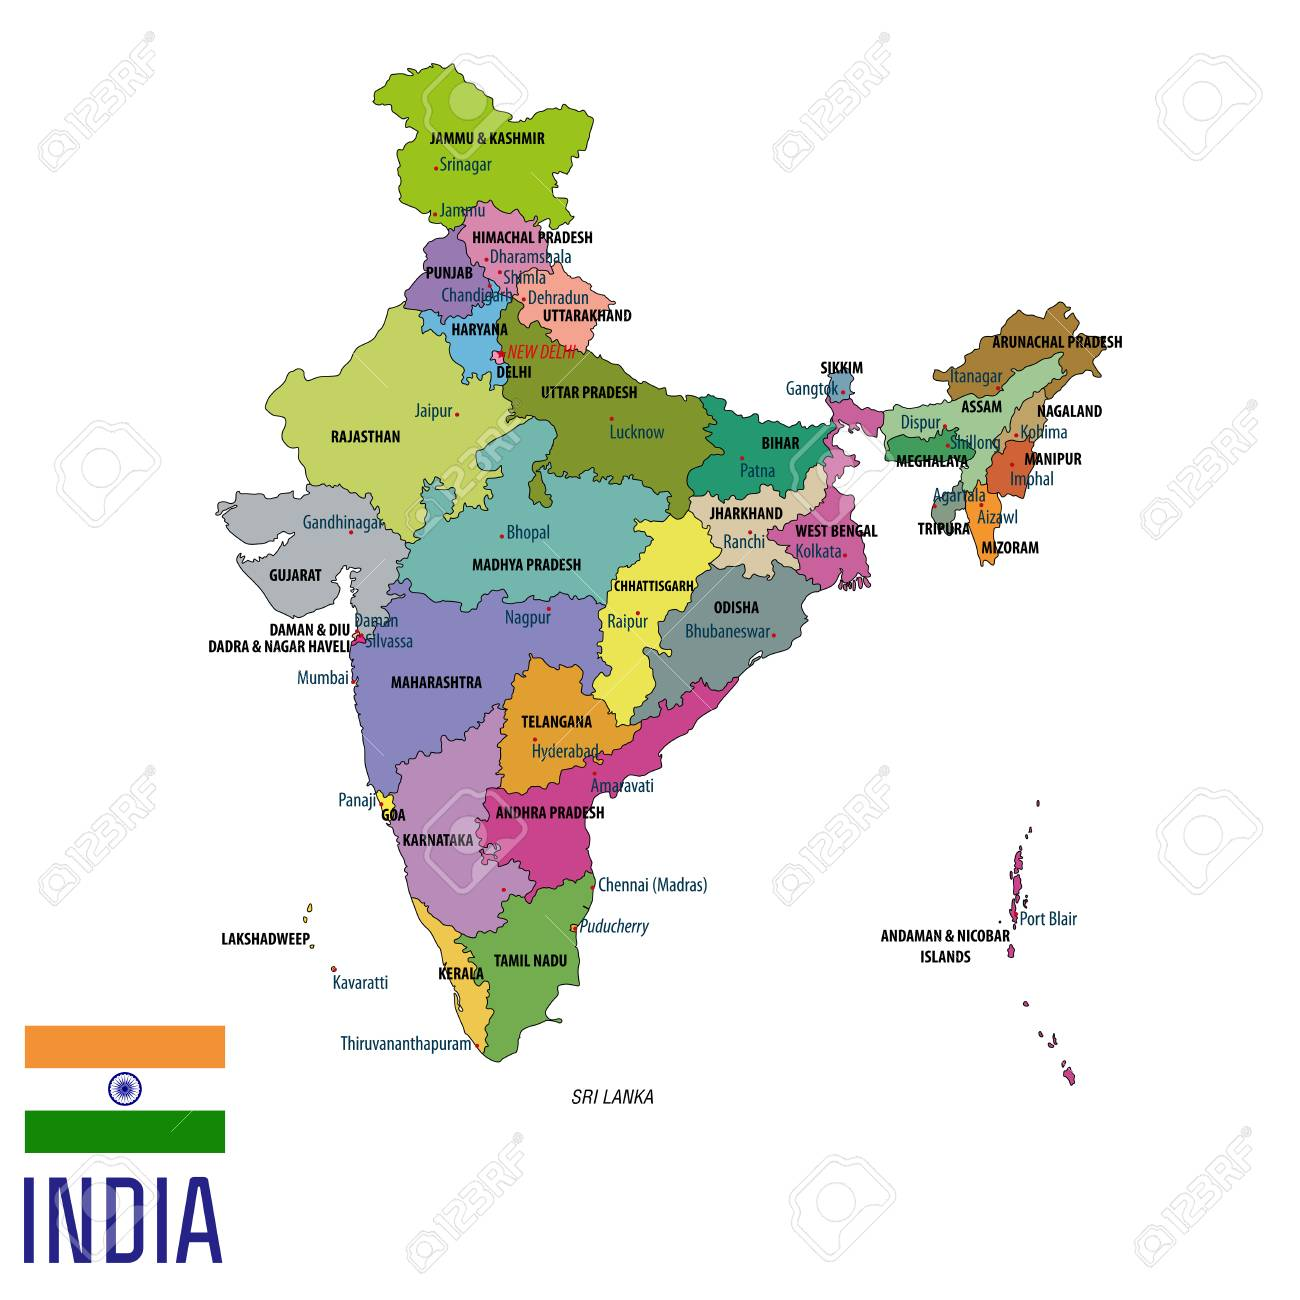 India Map With All States.Political Detailed Map Of India With All States And Country Boundary